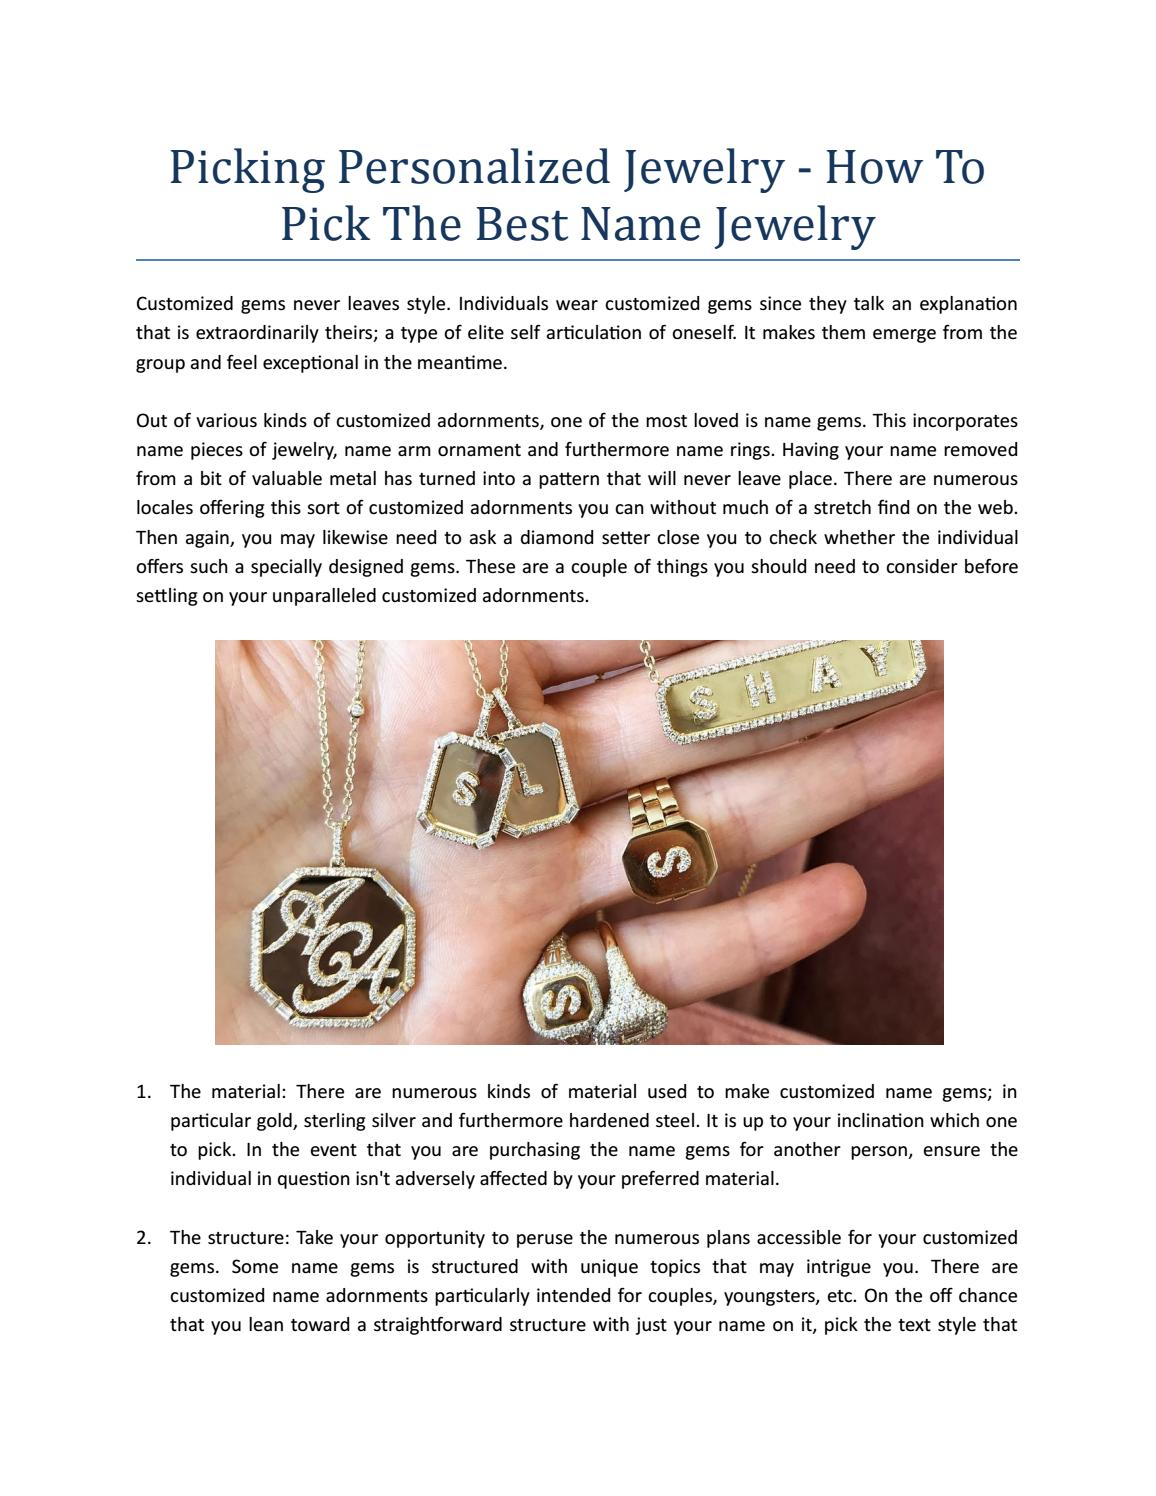 Picking Personalized Jewelry - How To Pick The Best Name